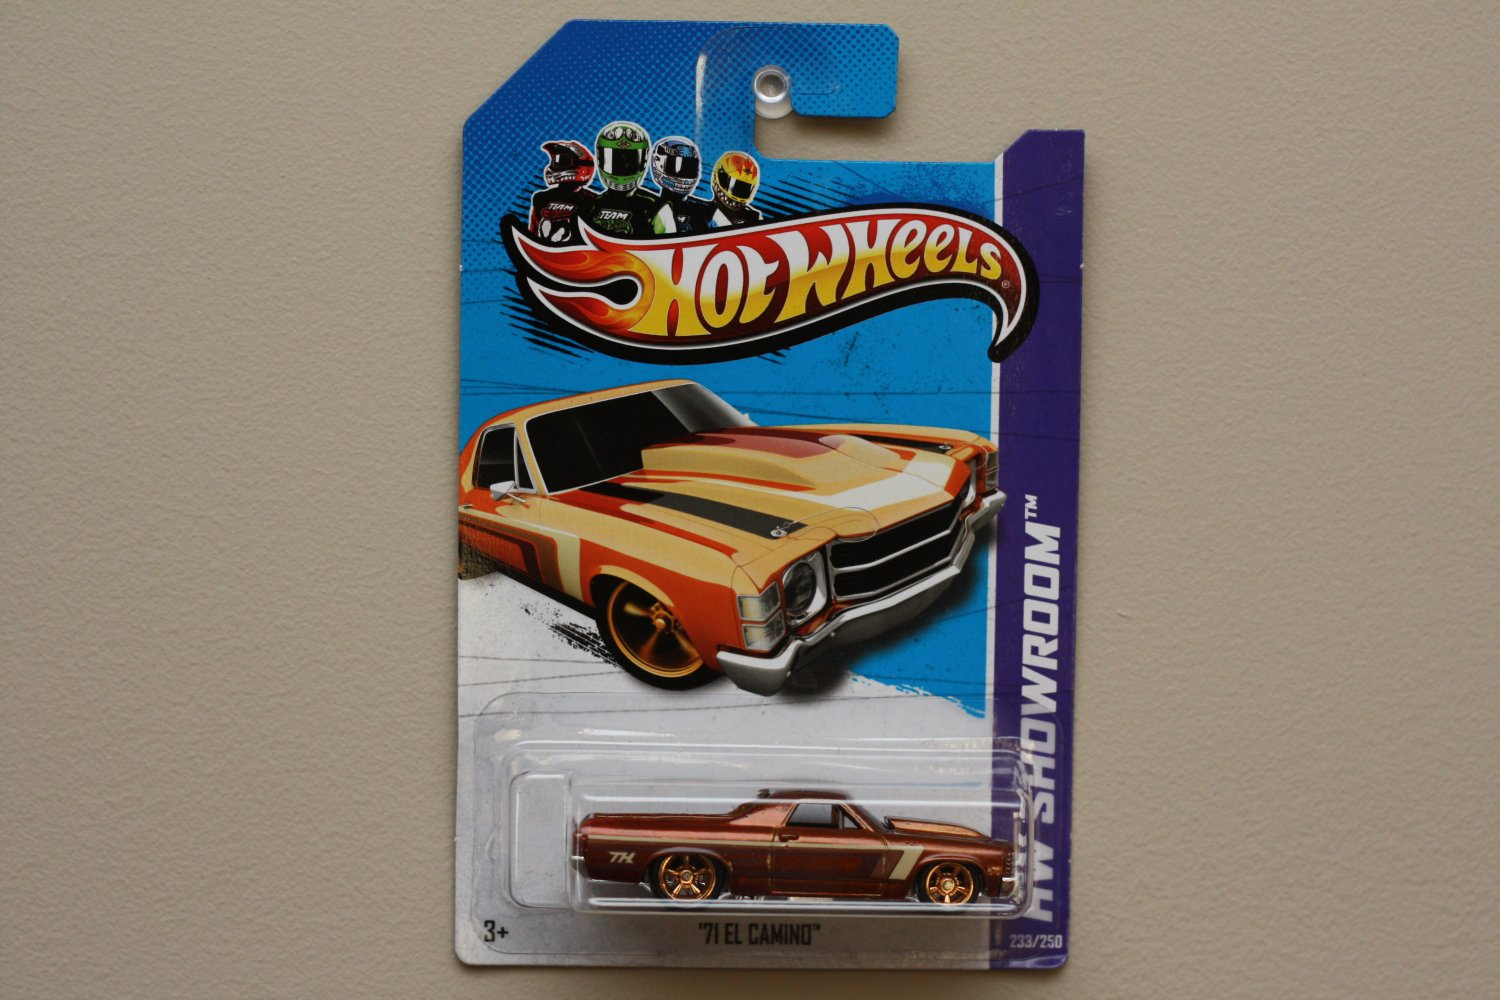 Hot Wheels 2013 HW Showroom '71 El Camino (spectraflame orange) Super Treasure Hunt (SEE CONDITION)